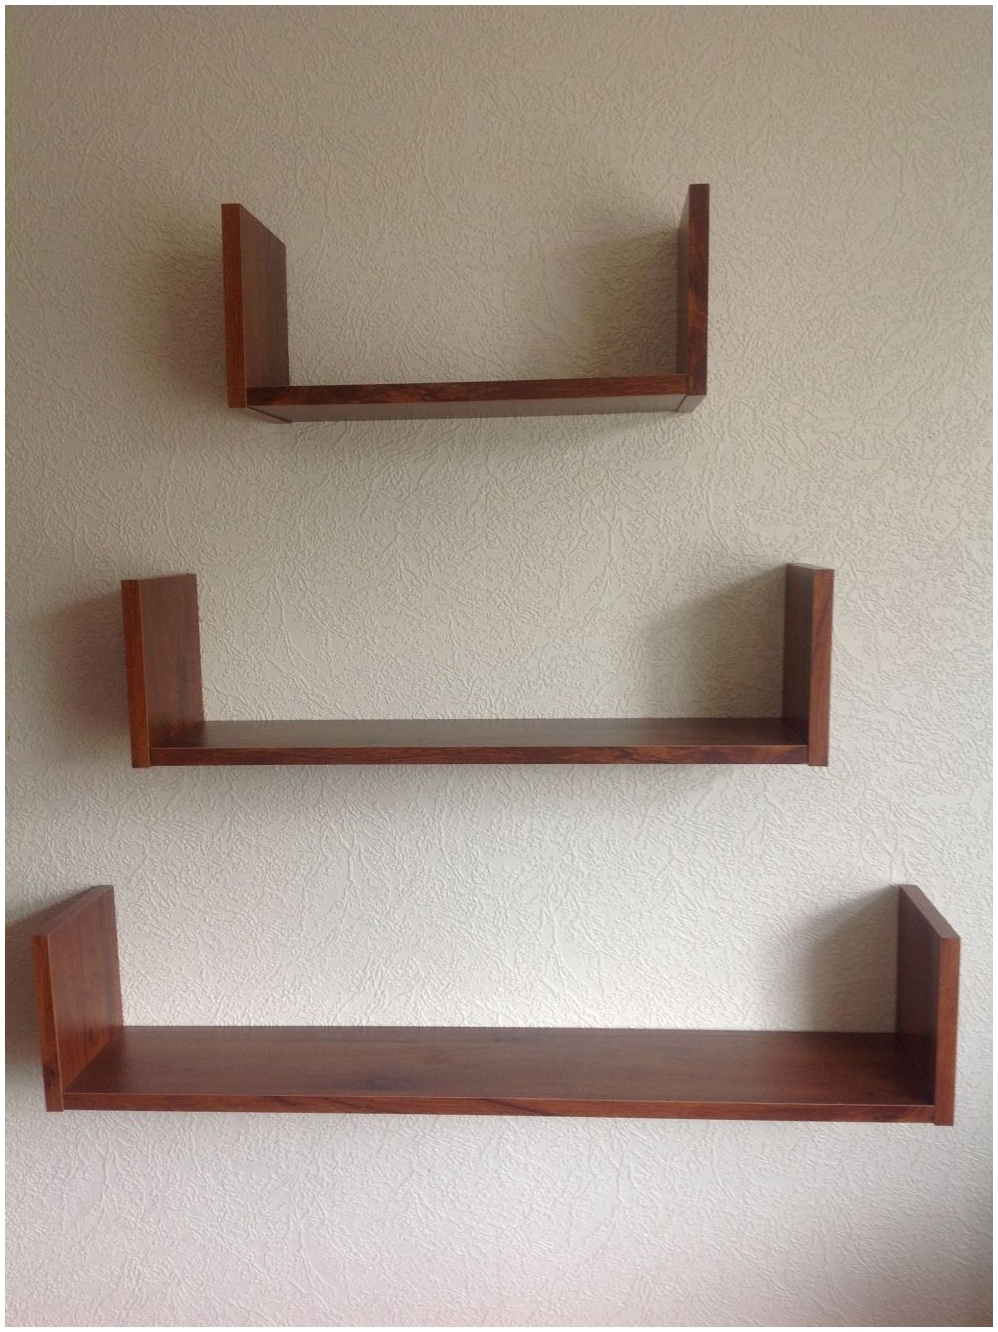 Wall Shelves Design Wall Mount Book Shelves For Sale Wall Mount Throughout Wall Mounted Shelves (View 5 of 12)